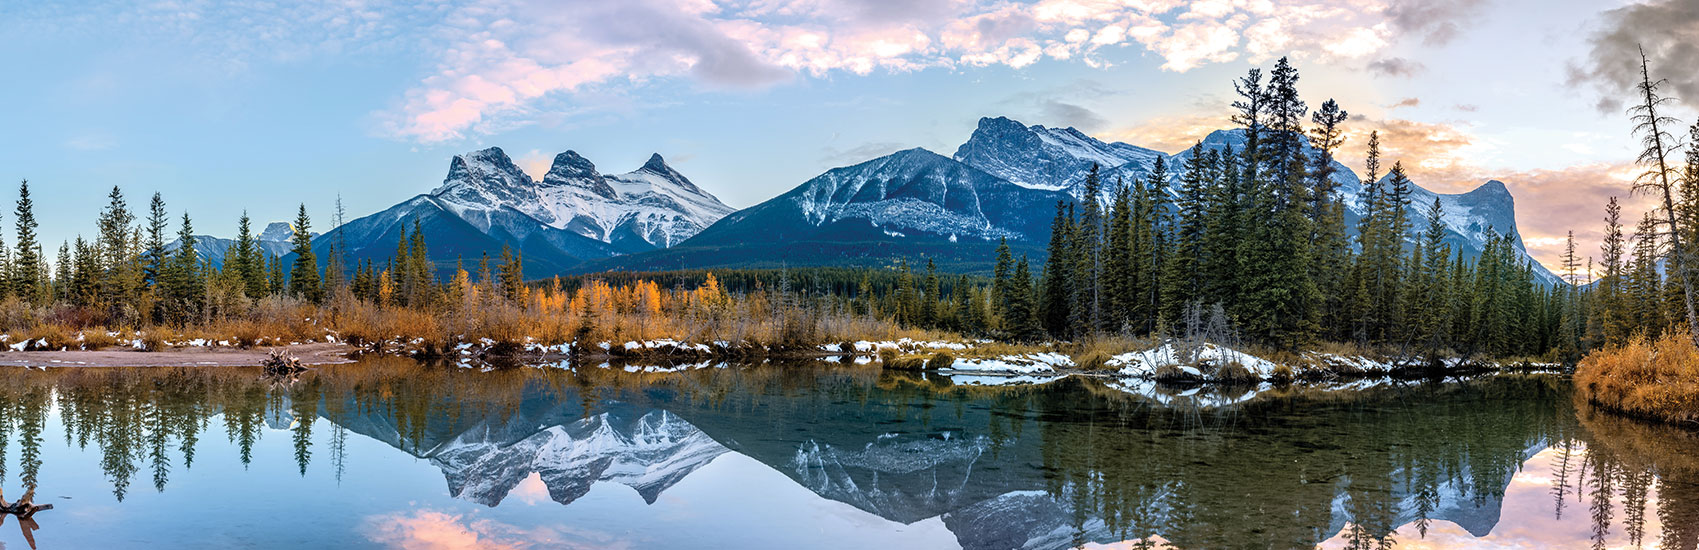 Save on 2021 Tours in Canada with Globus 5